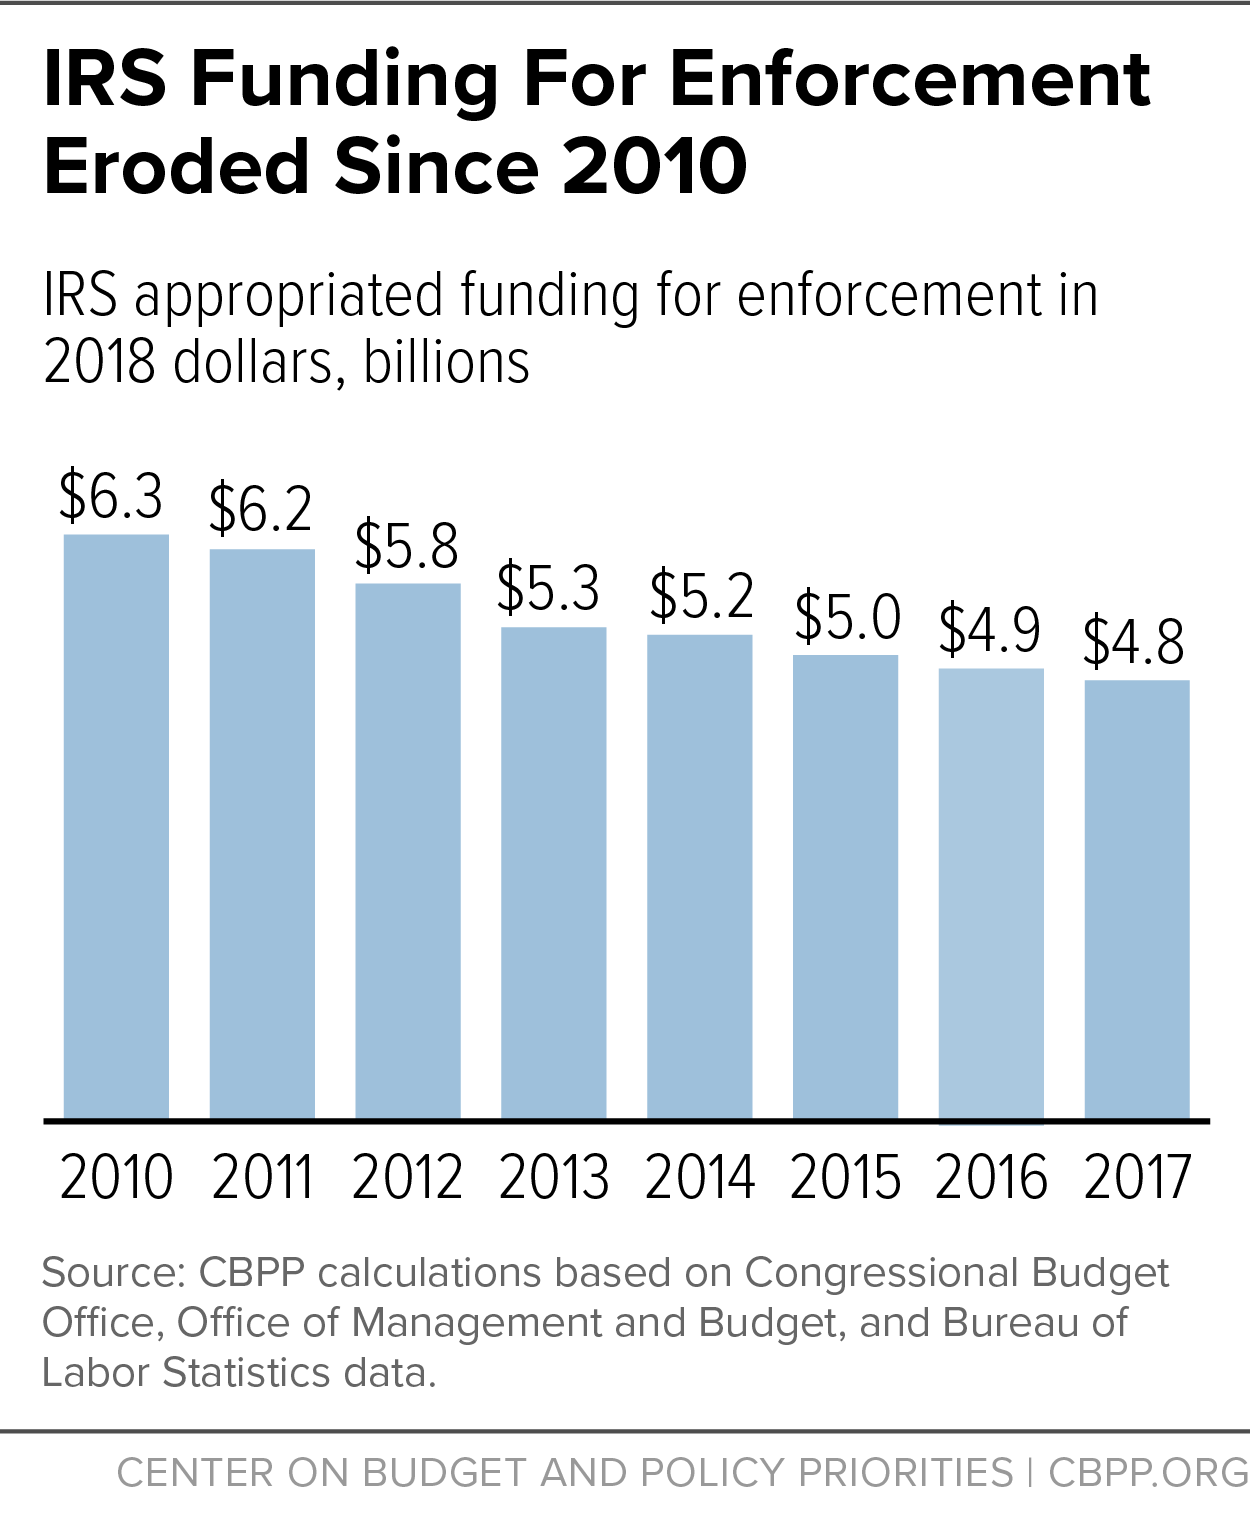 IRS Funding For Enforcement Eroded Since 2010